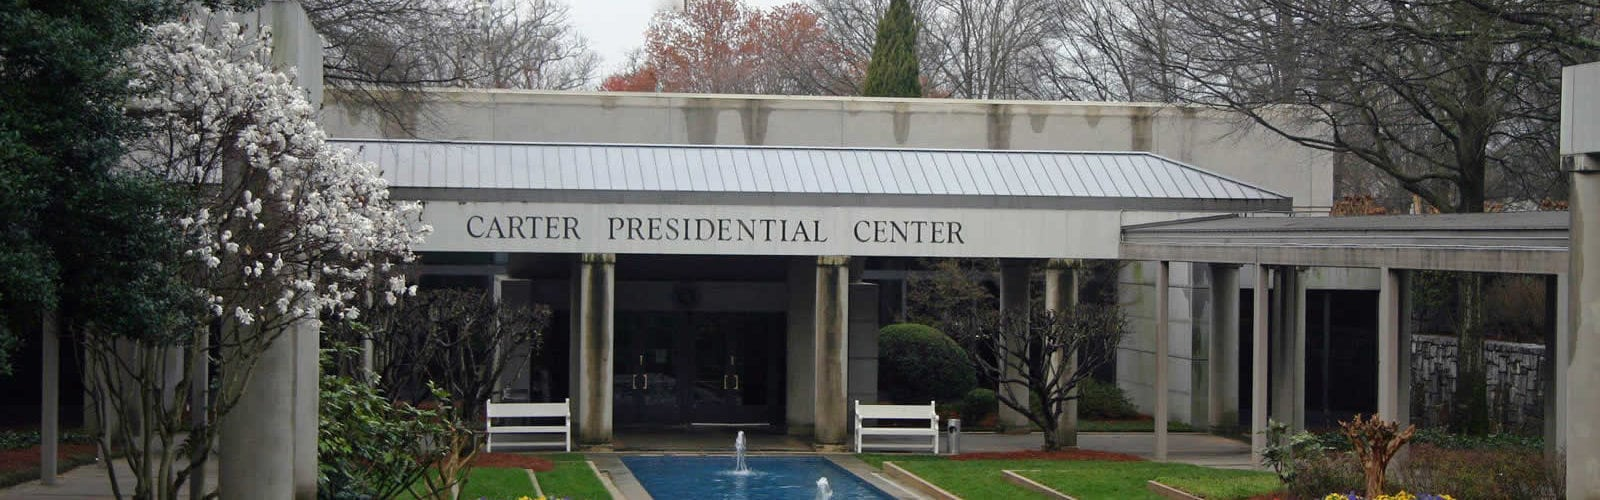 jimmy-carter-presidential-library-and-museum-musee-visite-une